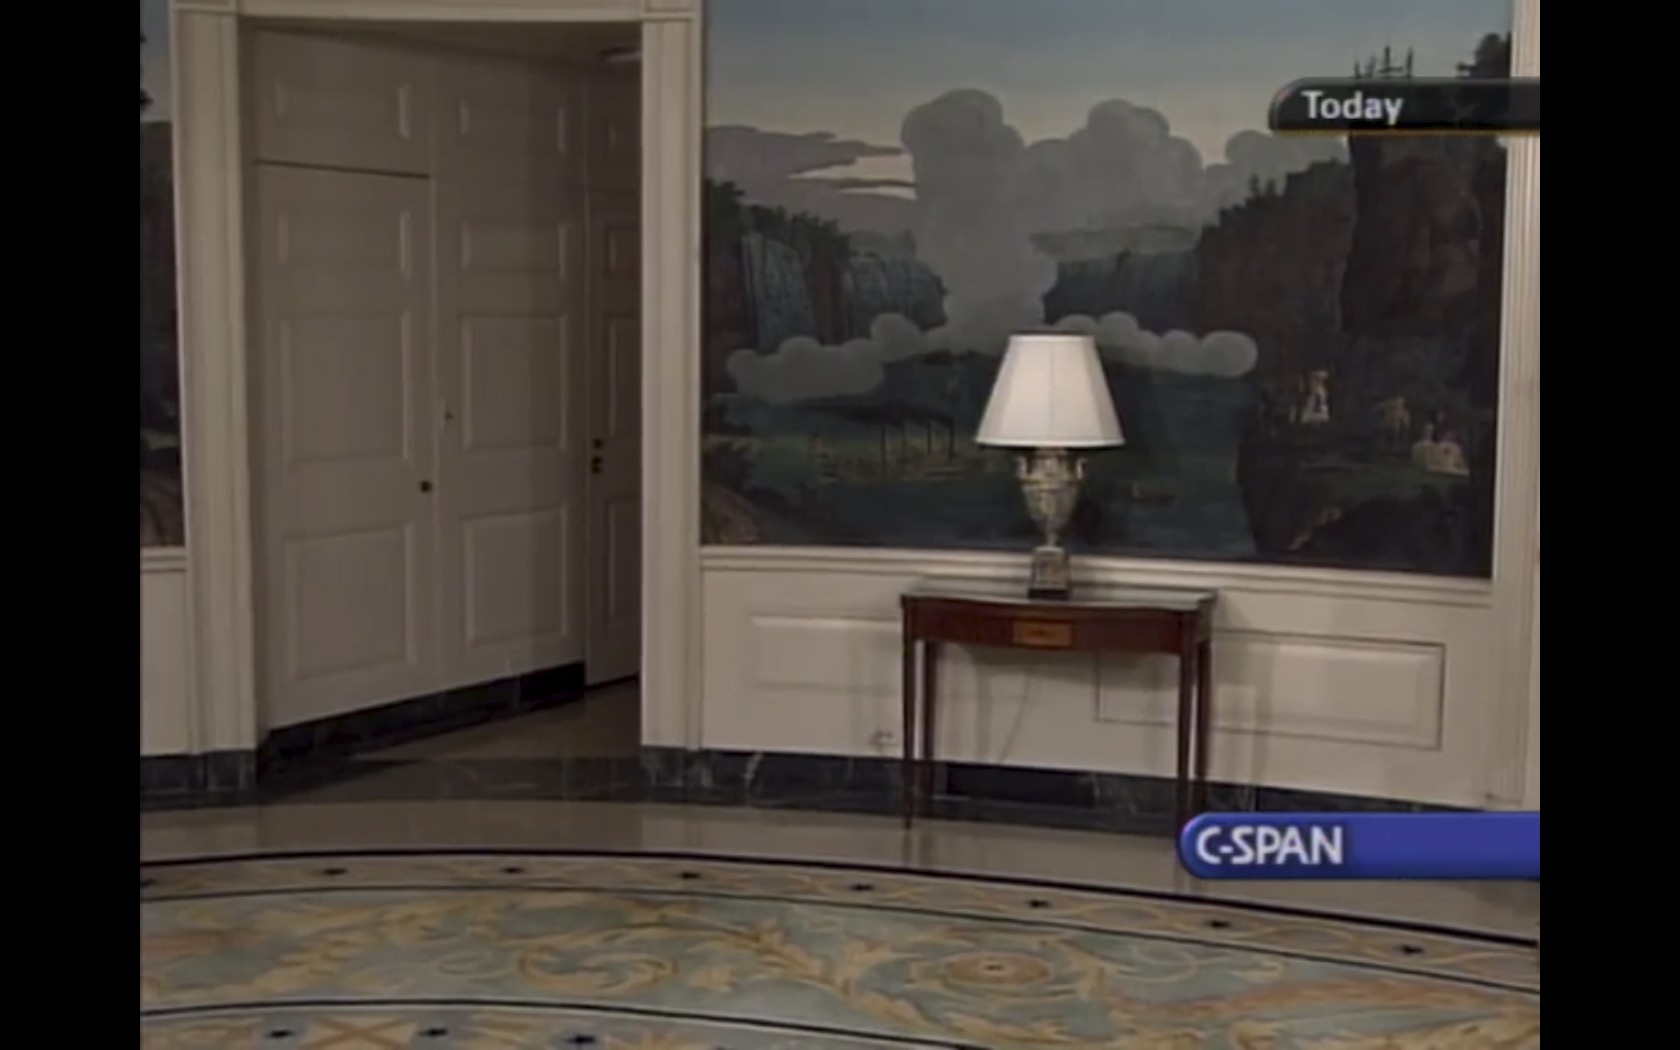 C-Span moments before President George W. Bush arrived to give a speech concerning the Virginia Tech shooting